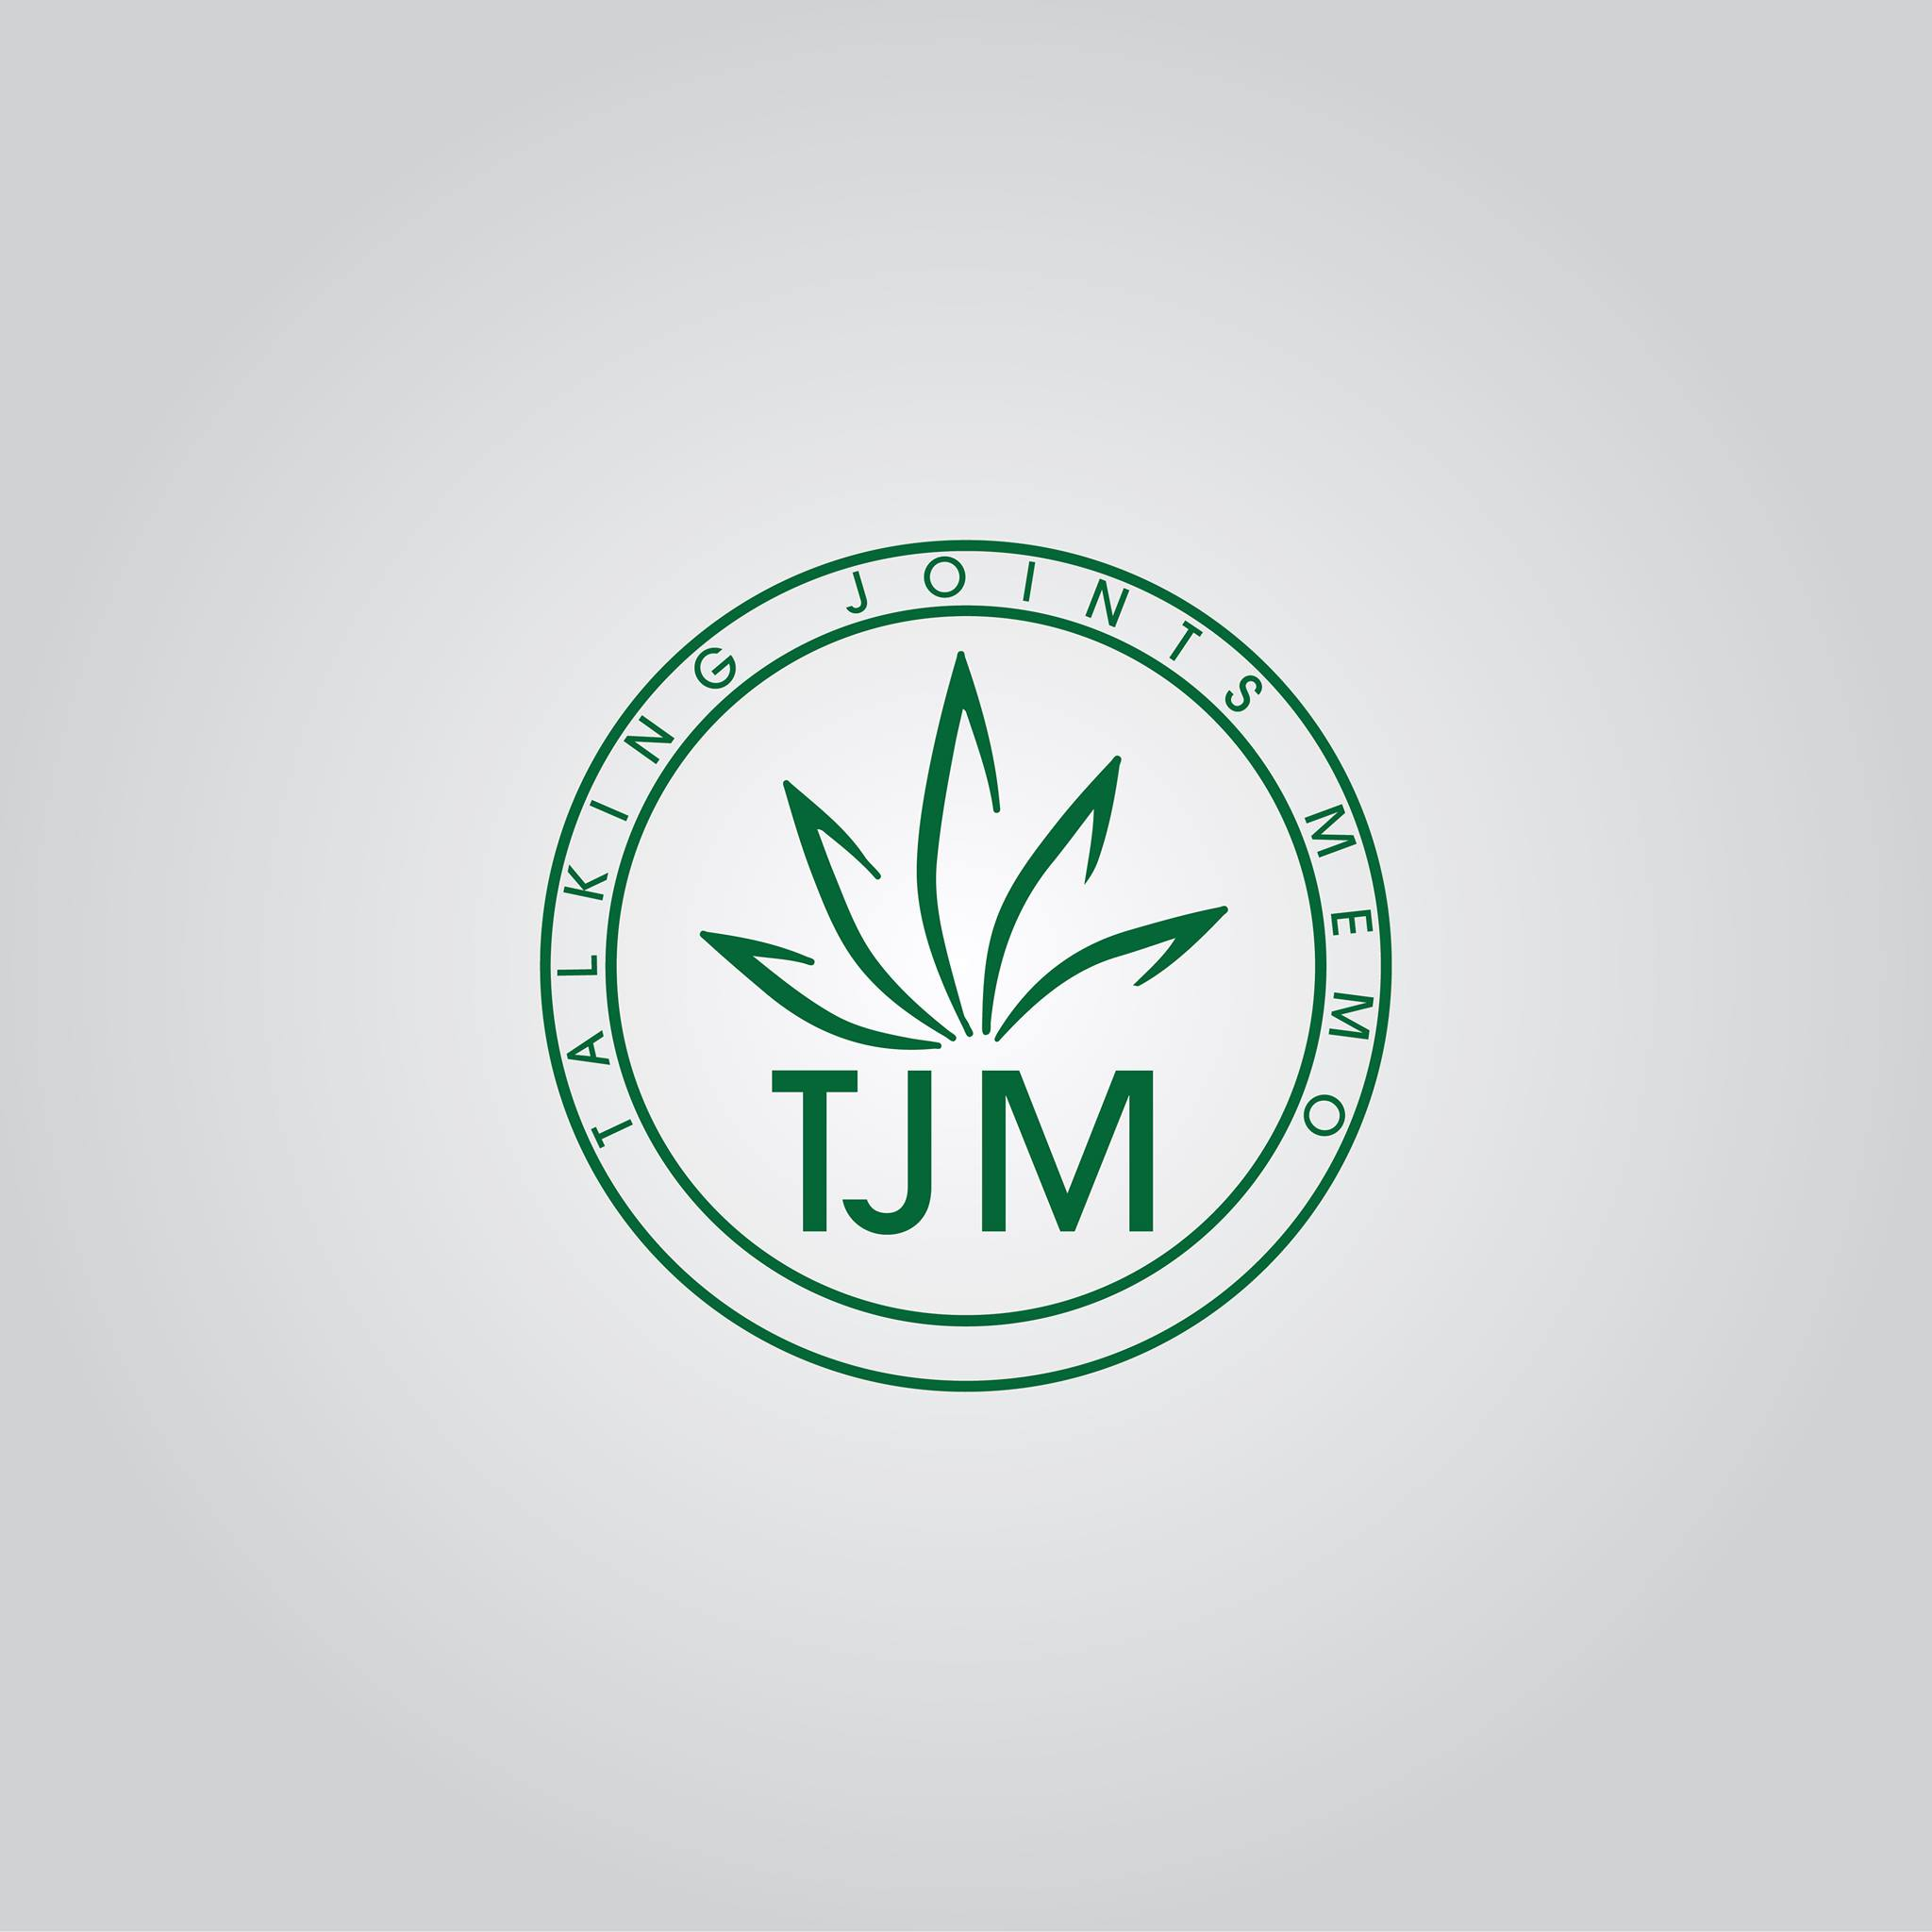 TODAY IN BRANDING: TALKING JOINTS MEMO REBRANDS FOR LOCAL CANNABIS INDUSTRY GAIN